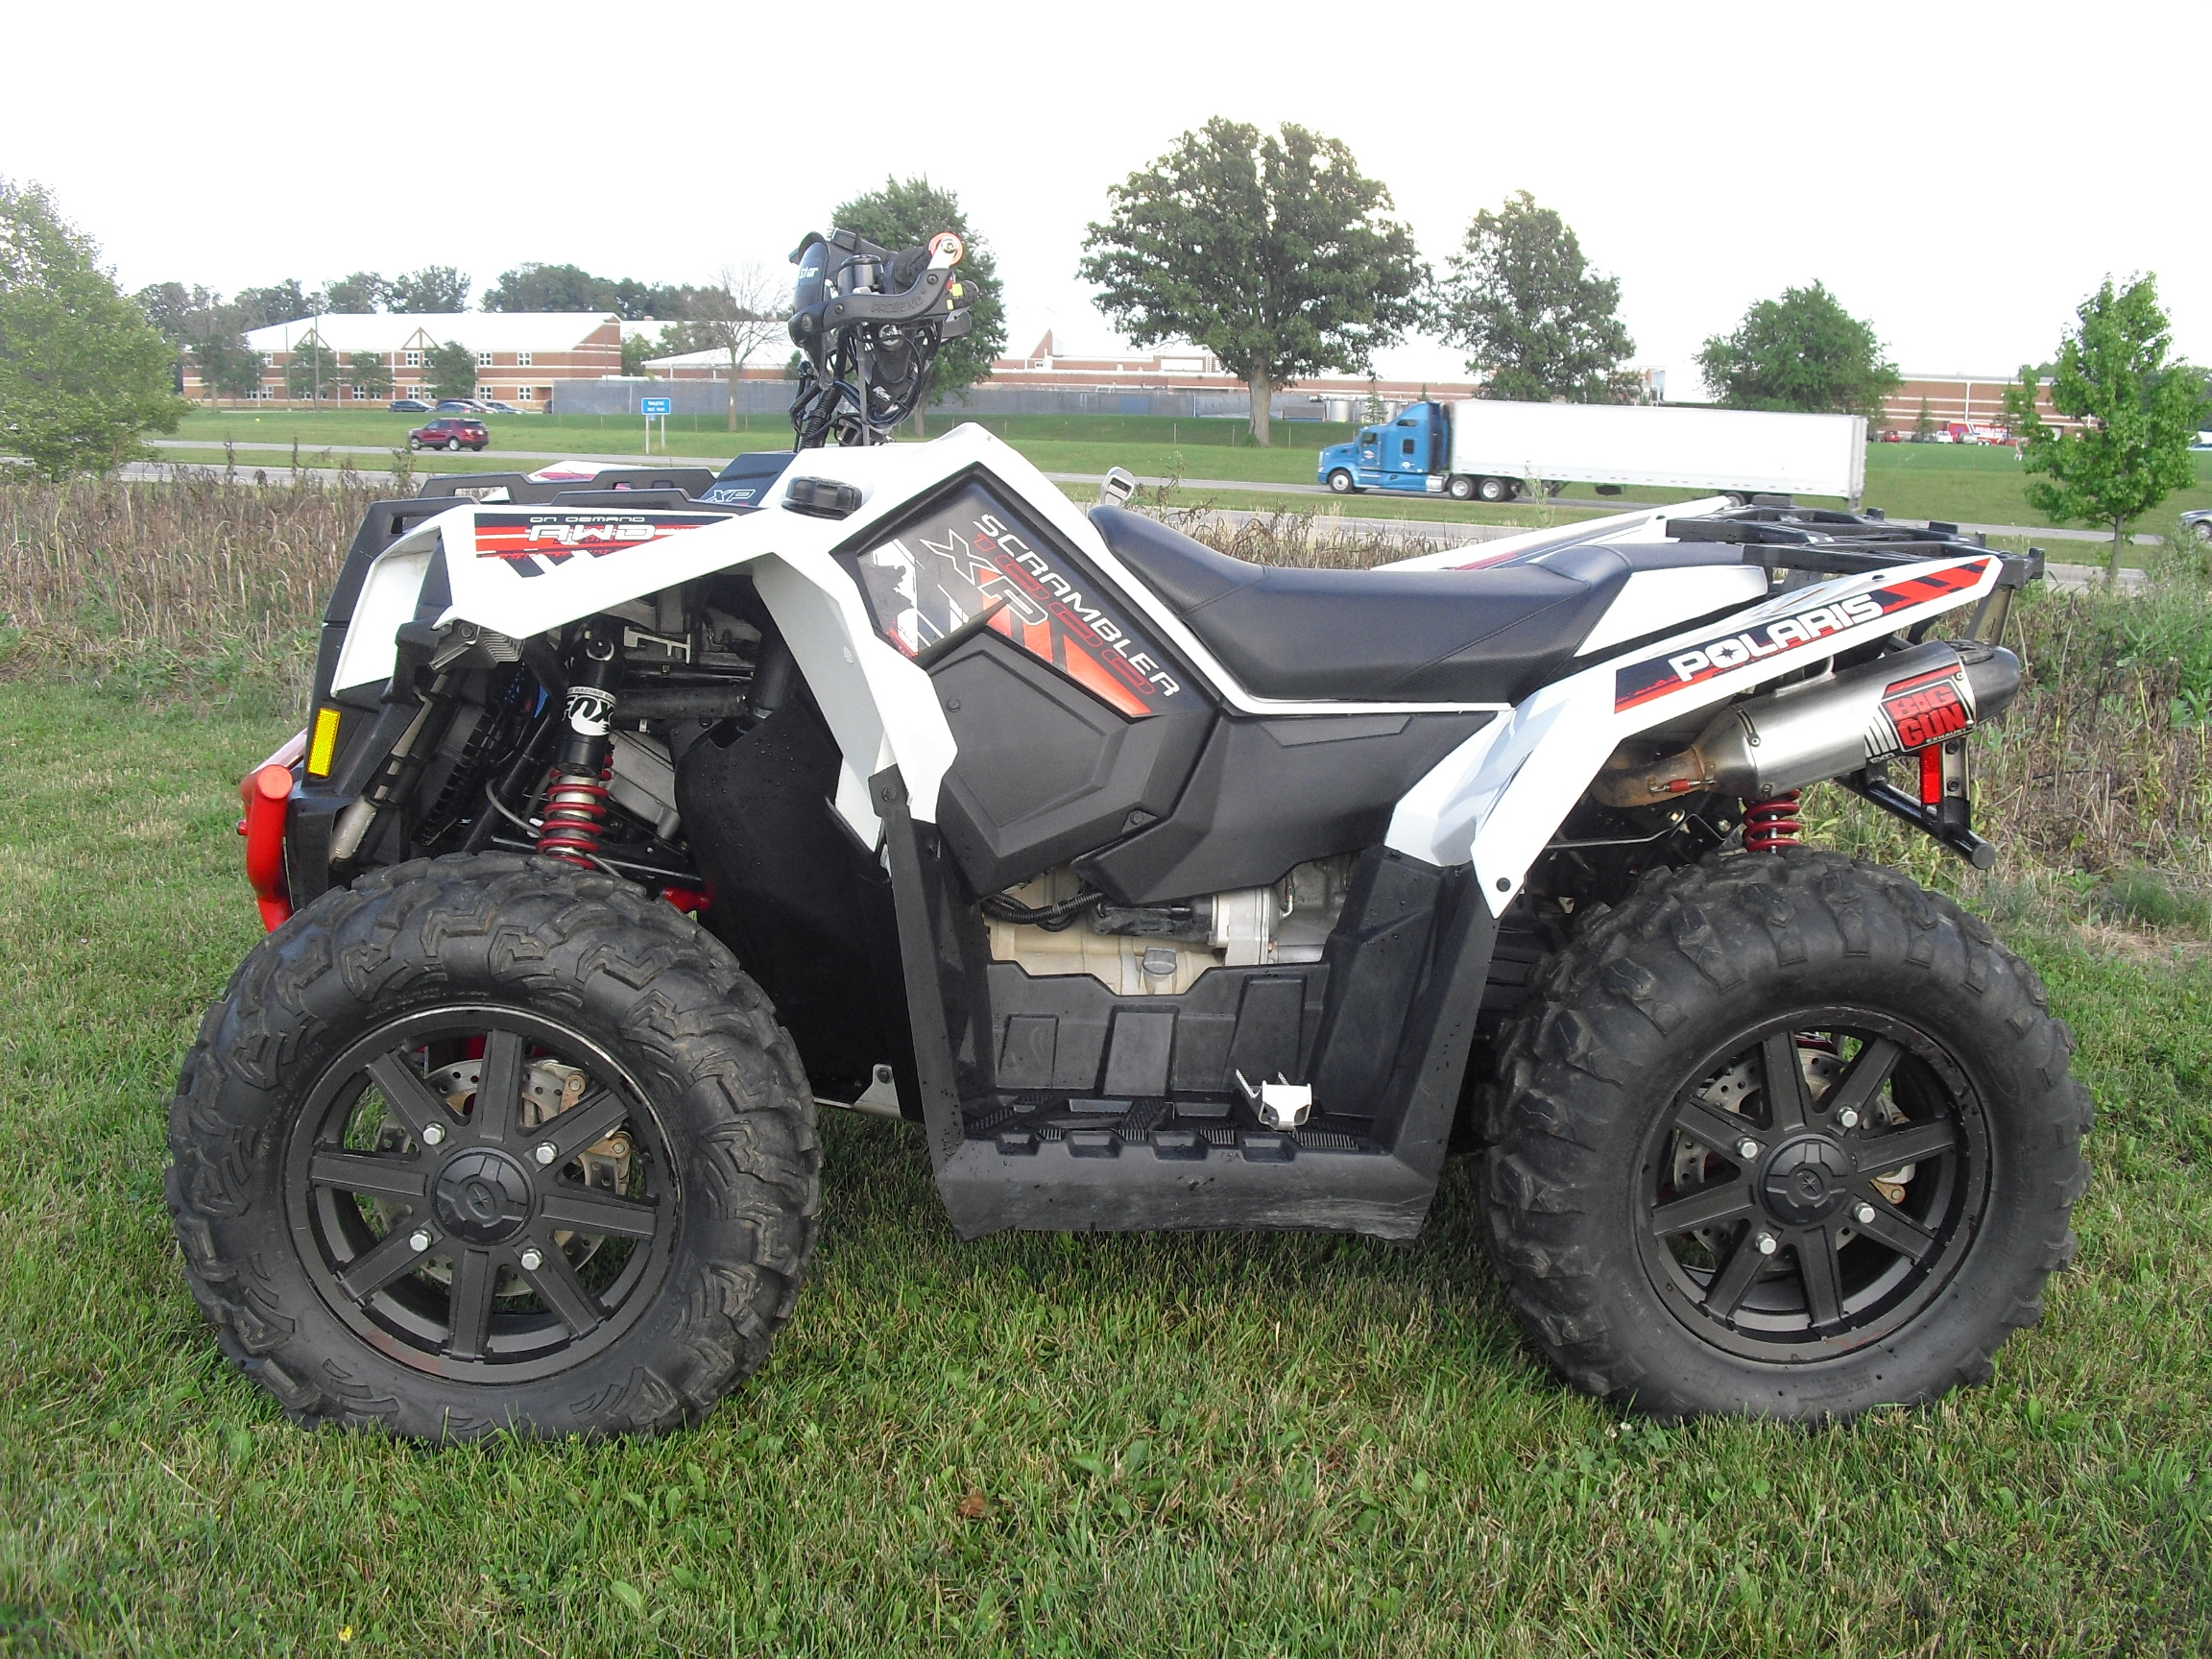 2014 polaris scrambler 1000xp polaris atv forum. Black Bedroom Furniture Sets. Home Design Ideas